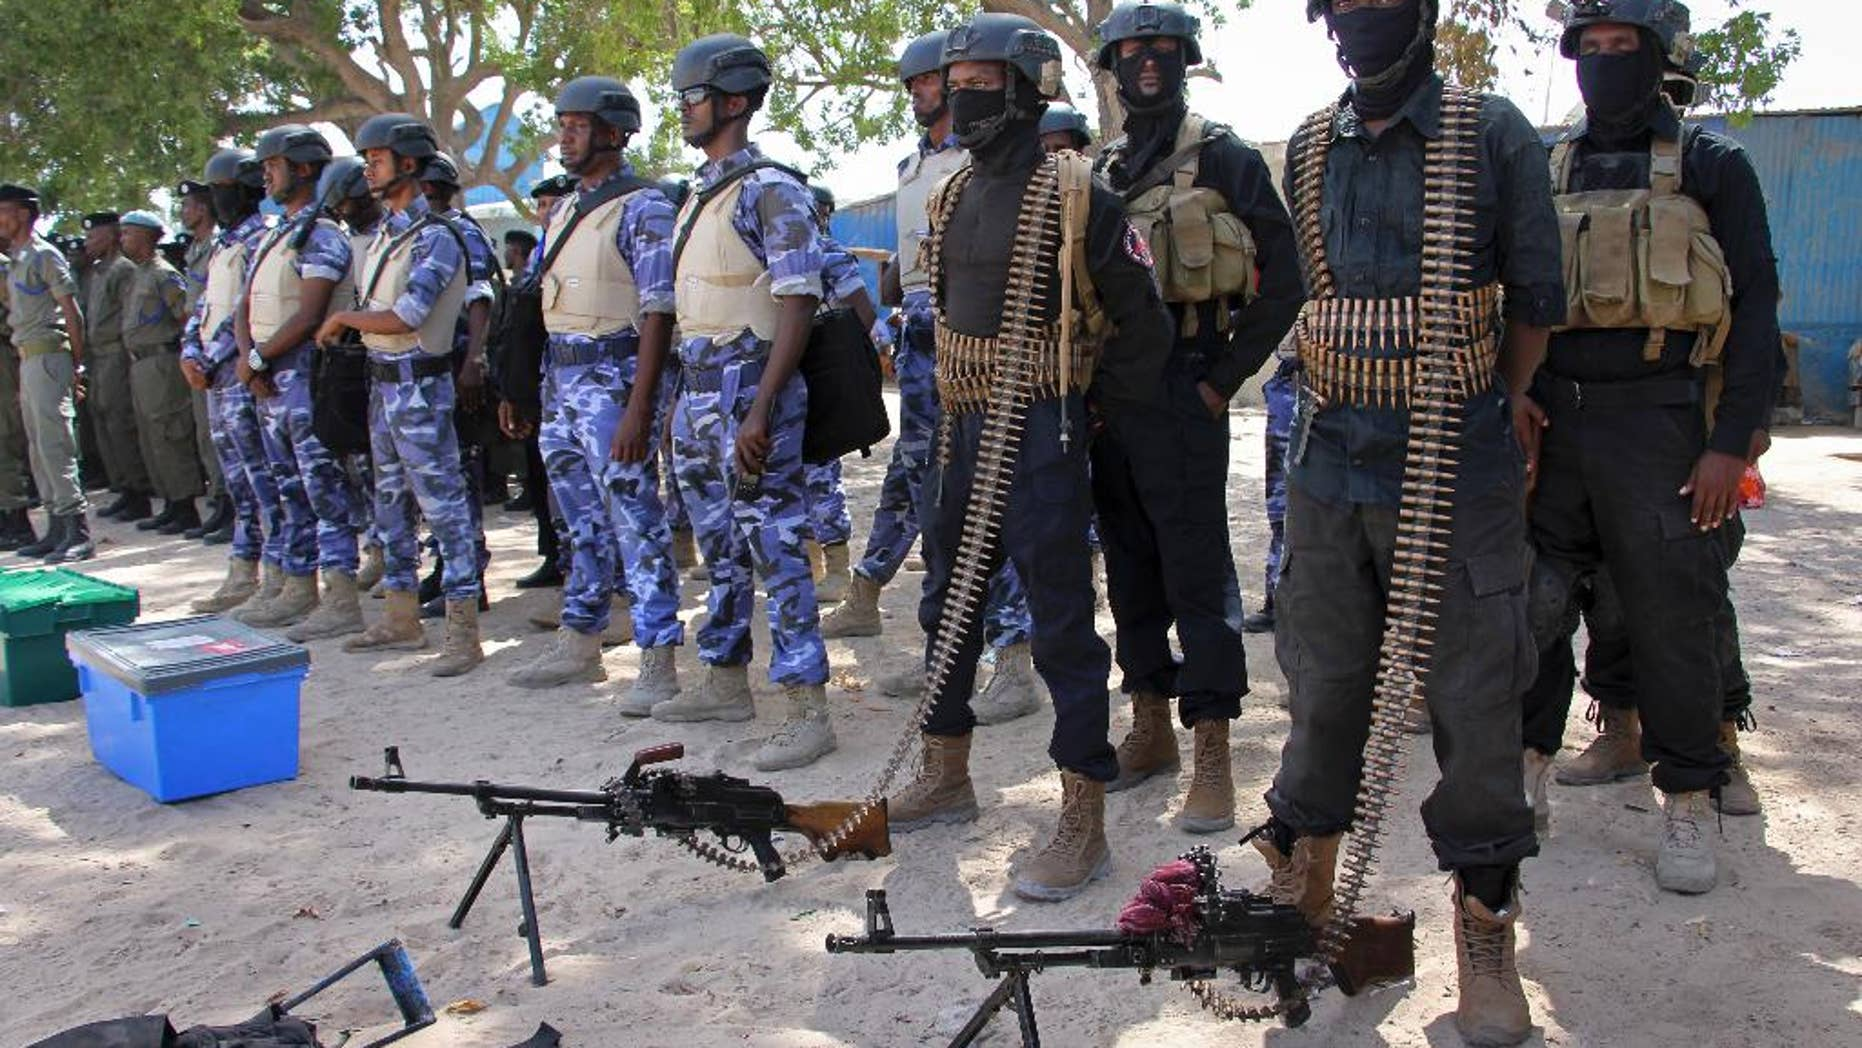 Somali soldiers prepare to secure the capital on the eve of presidential elections, at a police academy in Mogadishu.